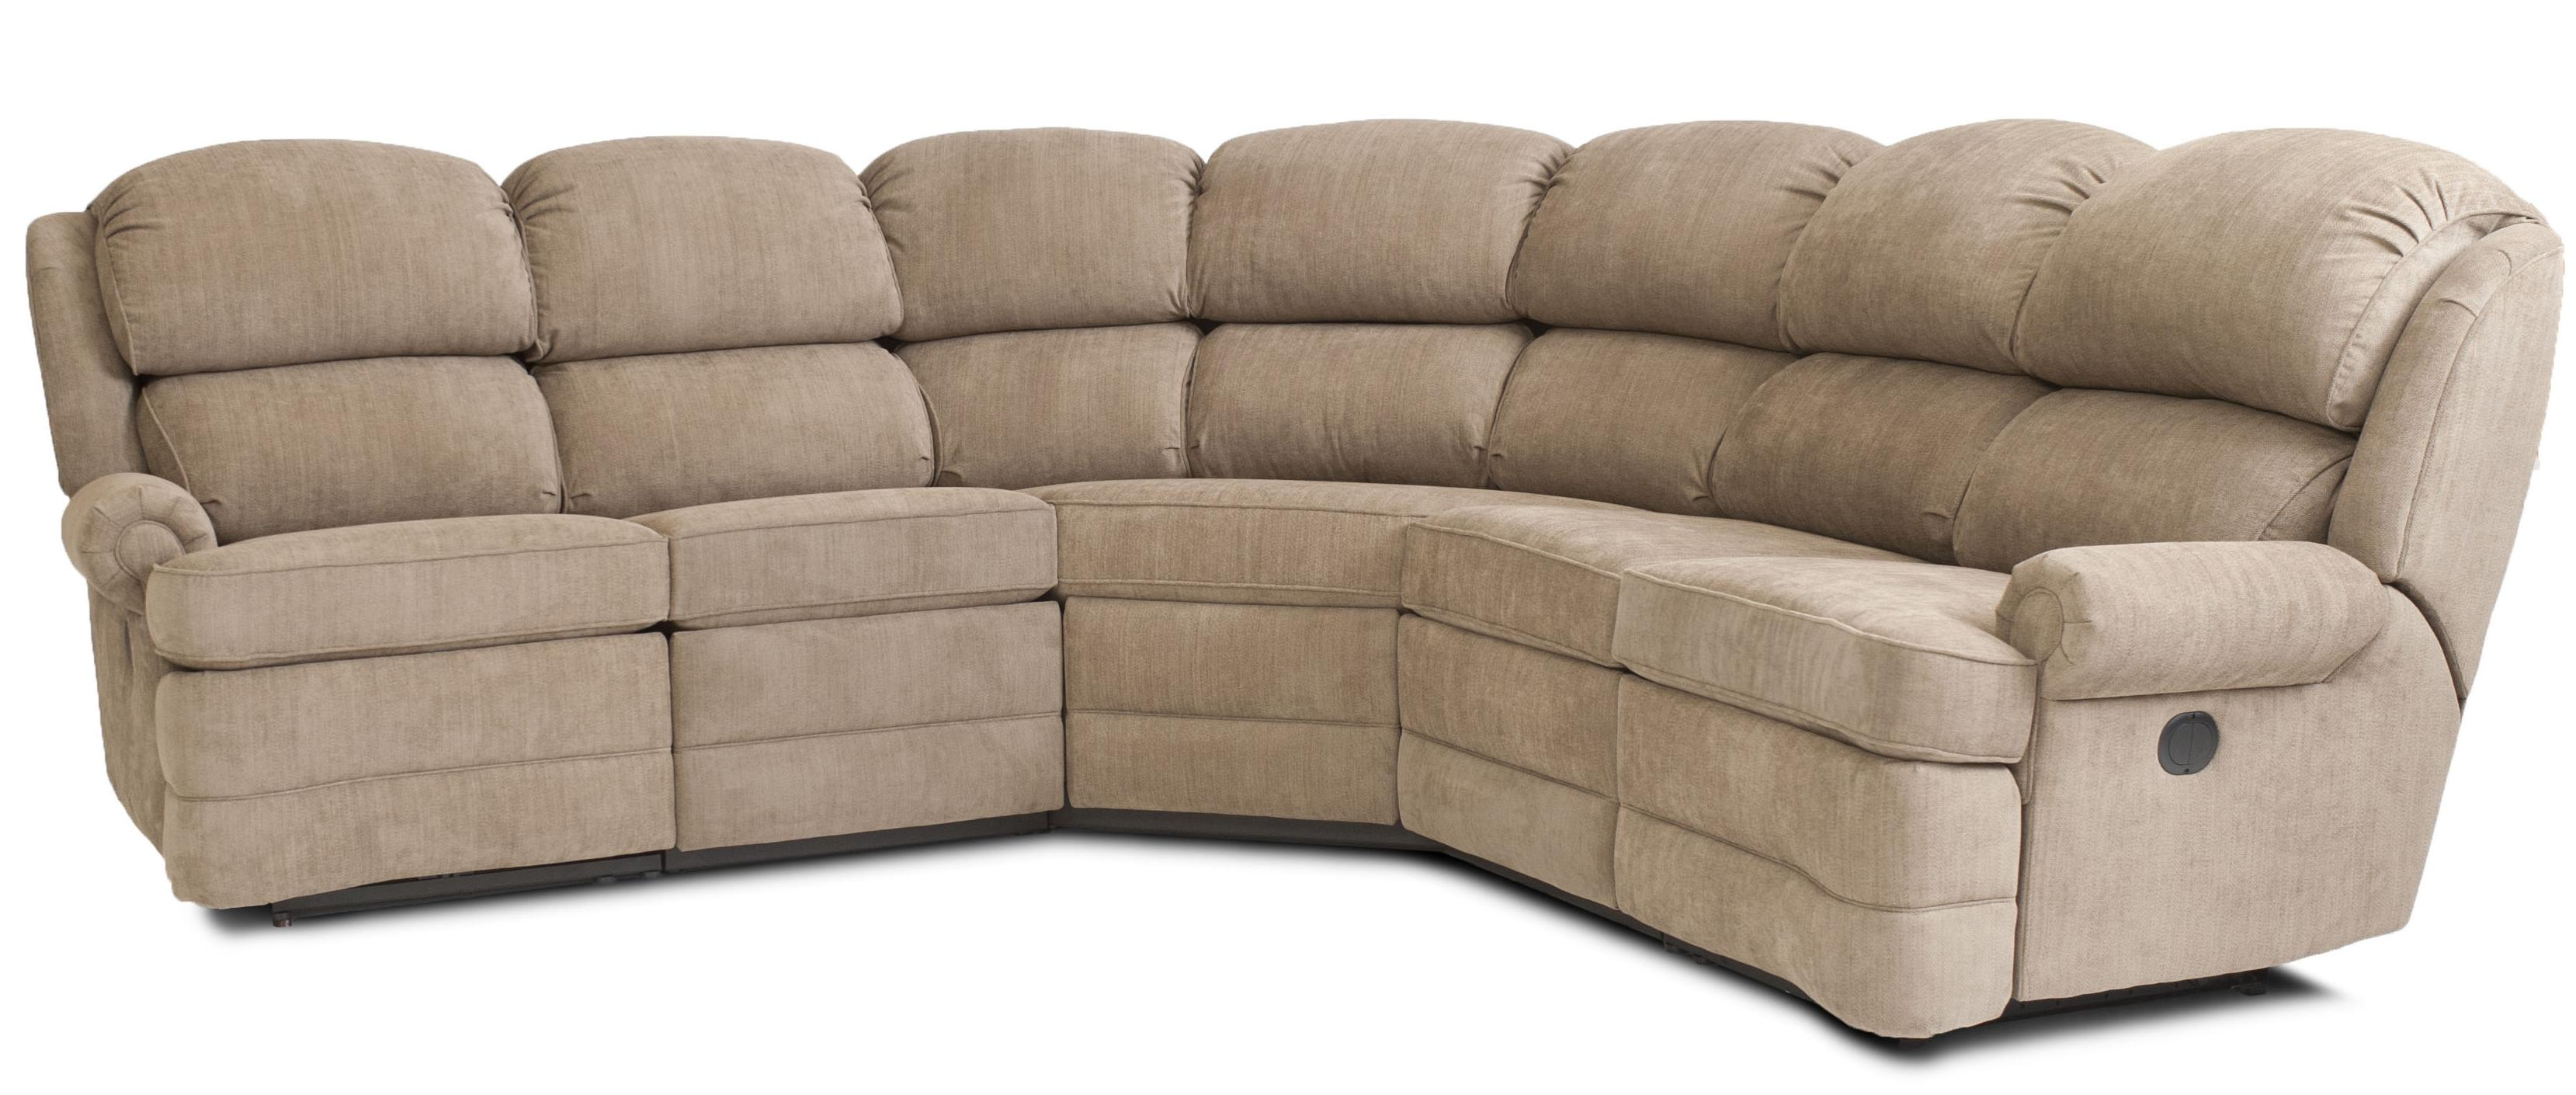 Transitional 5 Piece Reclining Sectional Sofa With Small